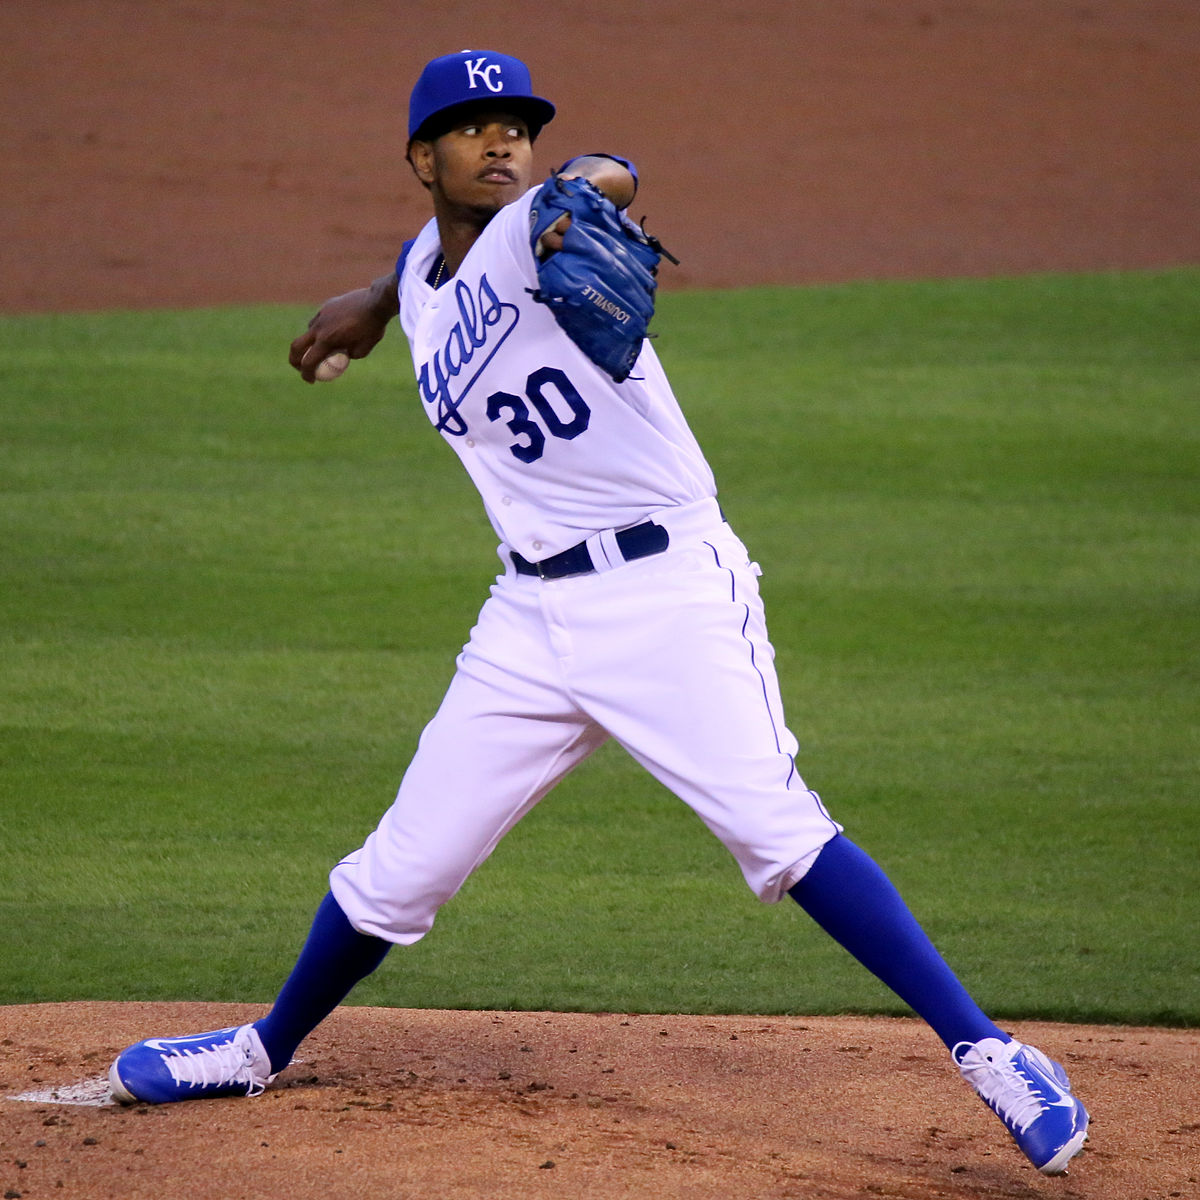 Yordano Ventura October Mlb Rumors Yankees Manny Machado